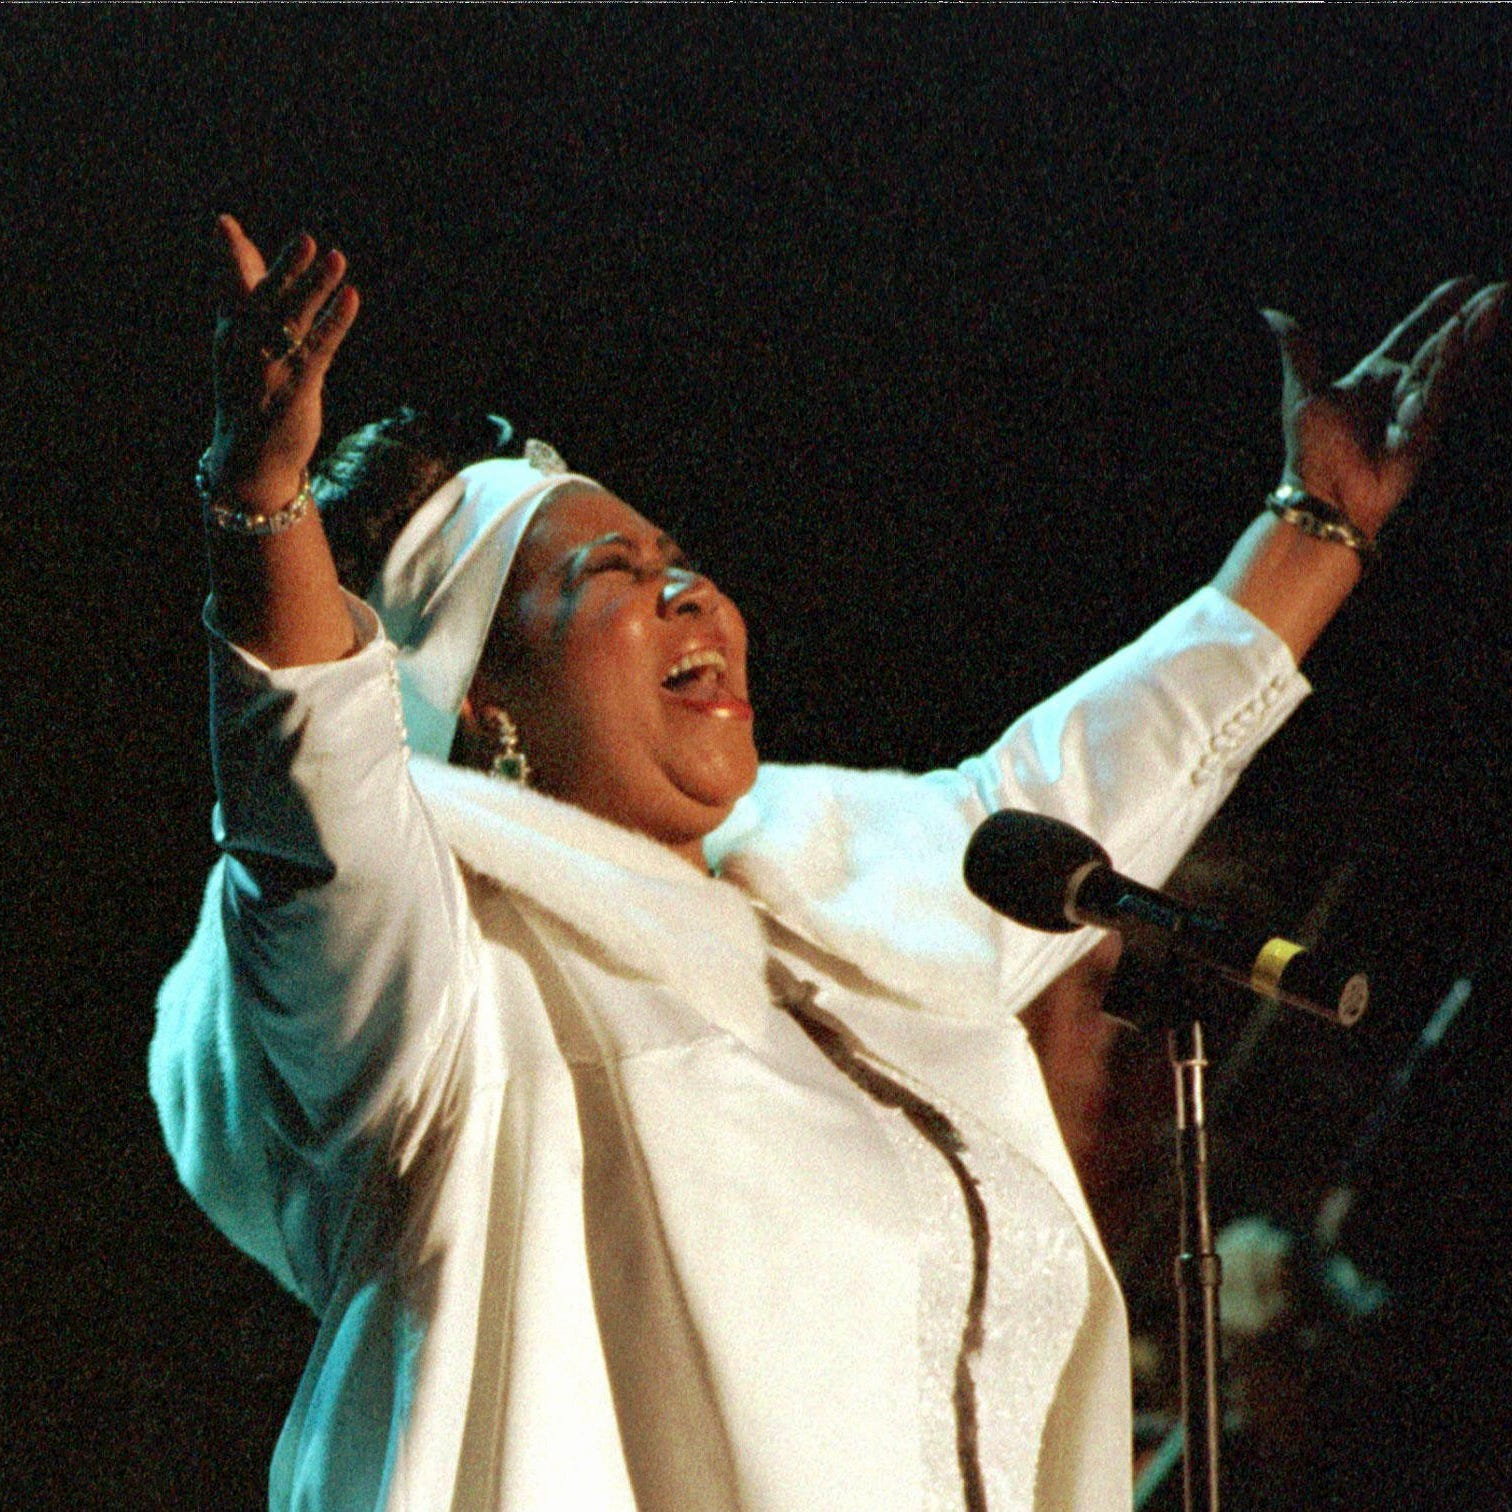 R-E-S-P-E-C-T not unanimous for Aretha Franklin in House vote on renaming Lodge